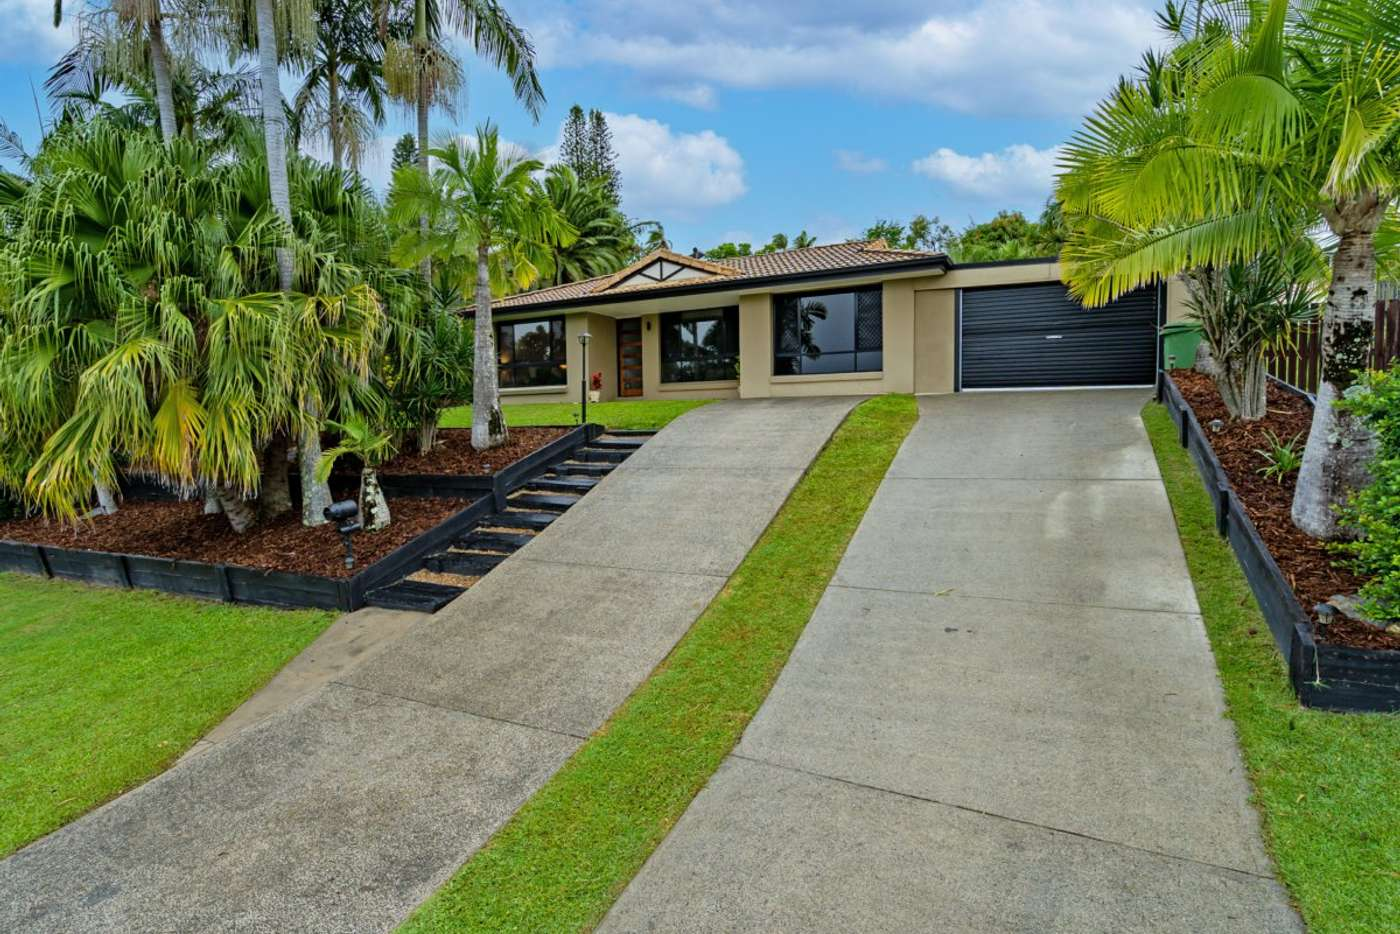 Main view of Homely house listing, 23 Virgil Court, Worongary QLD 4213